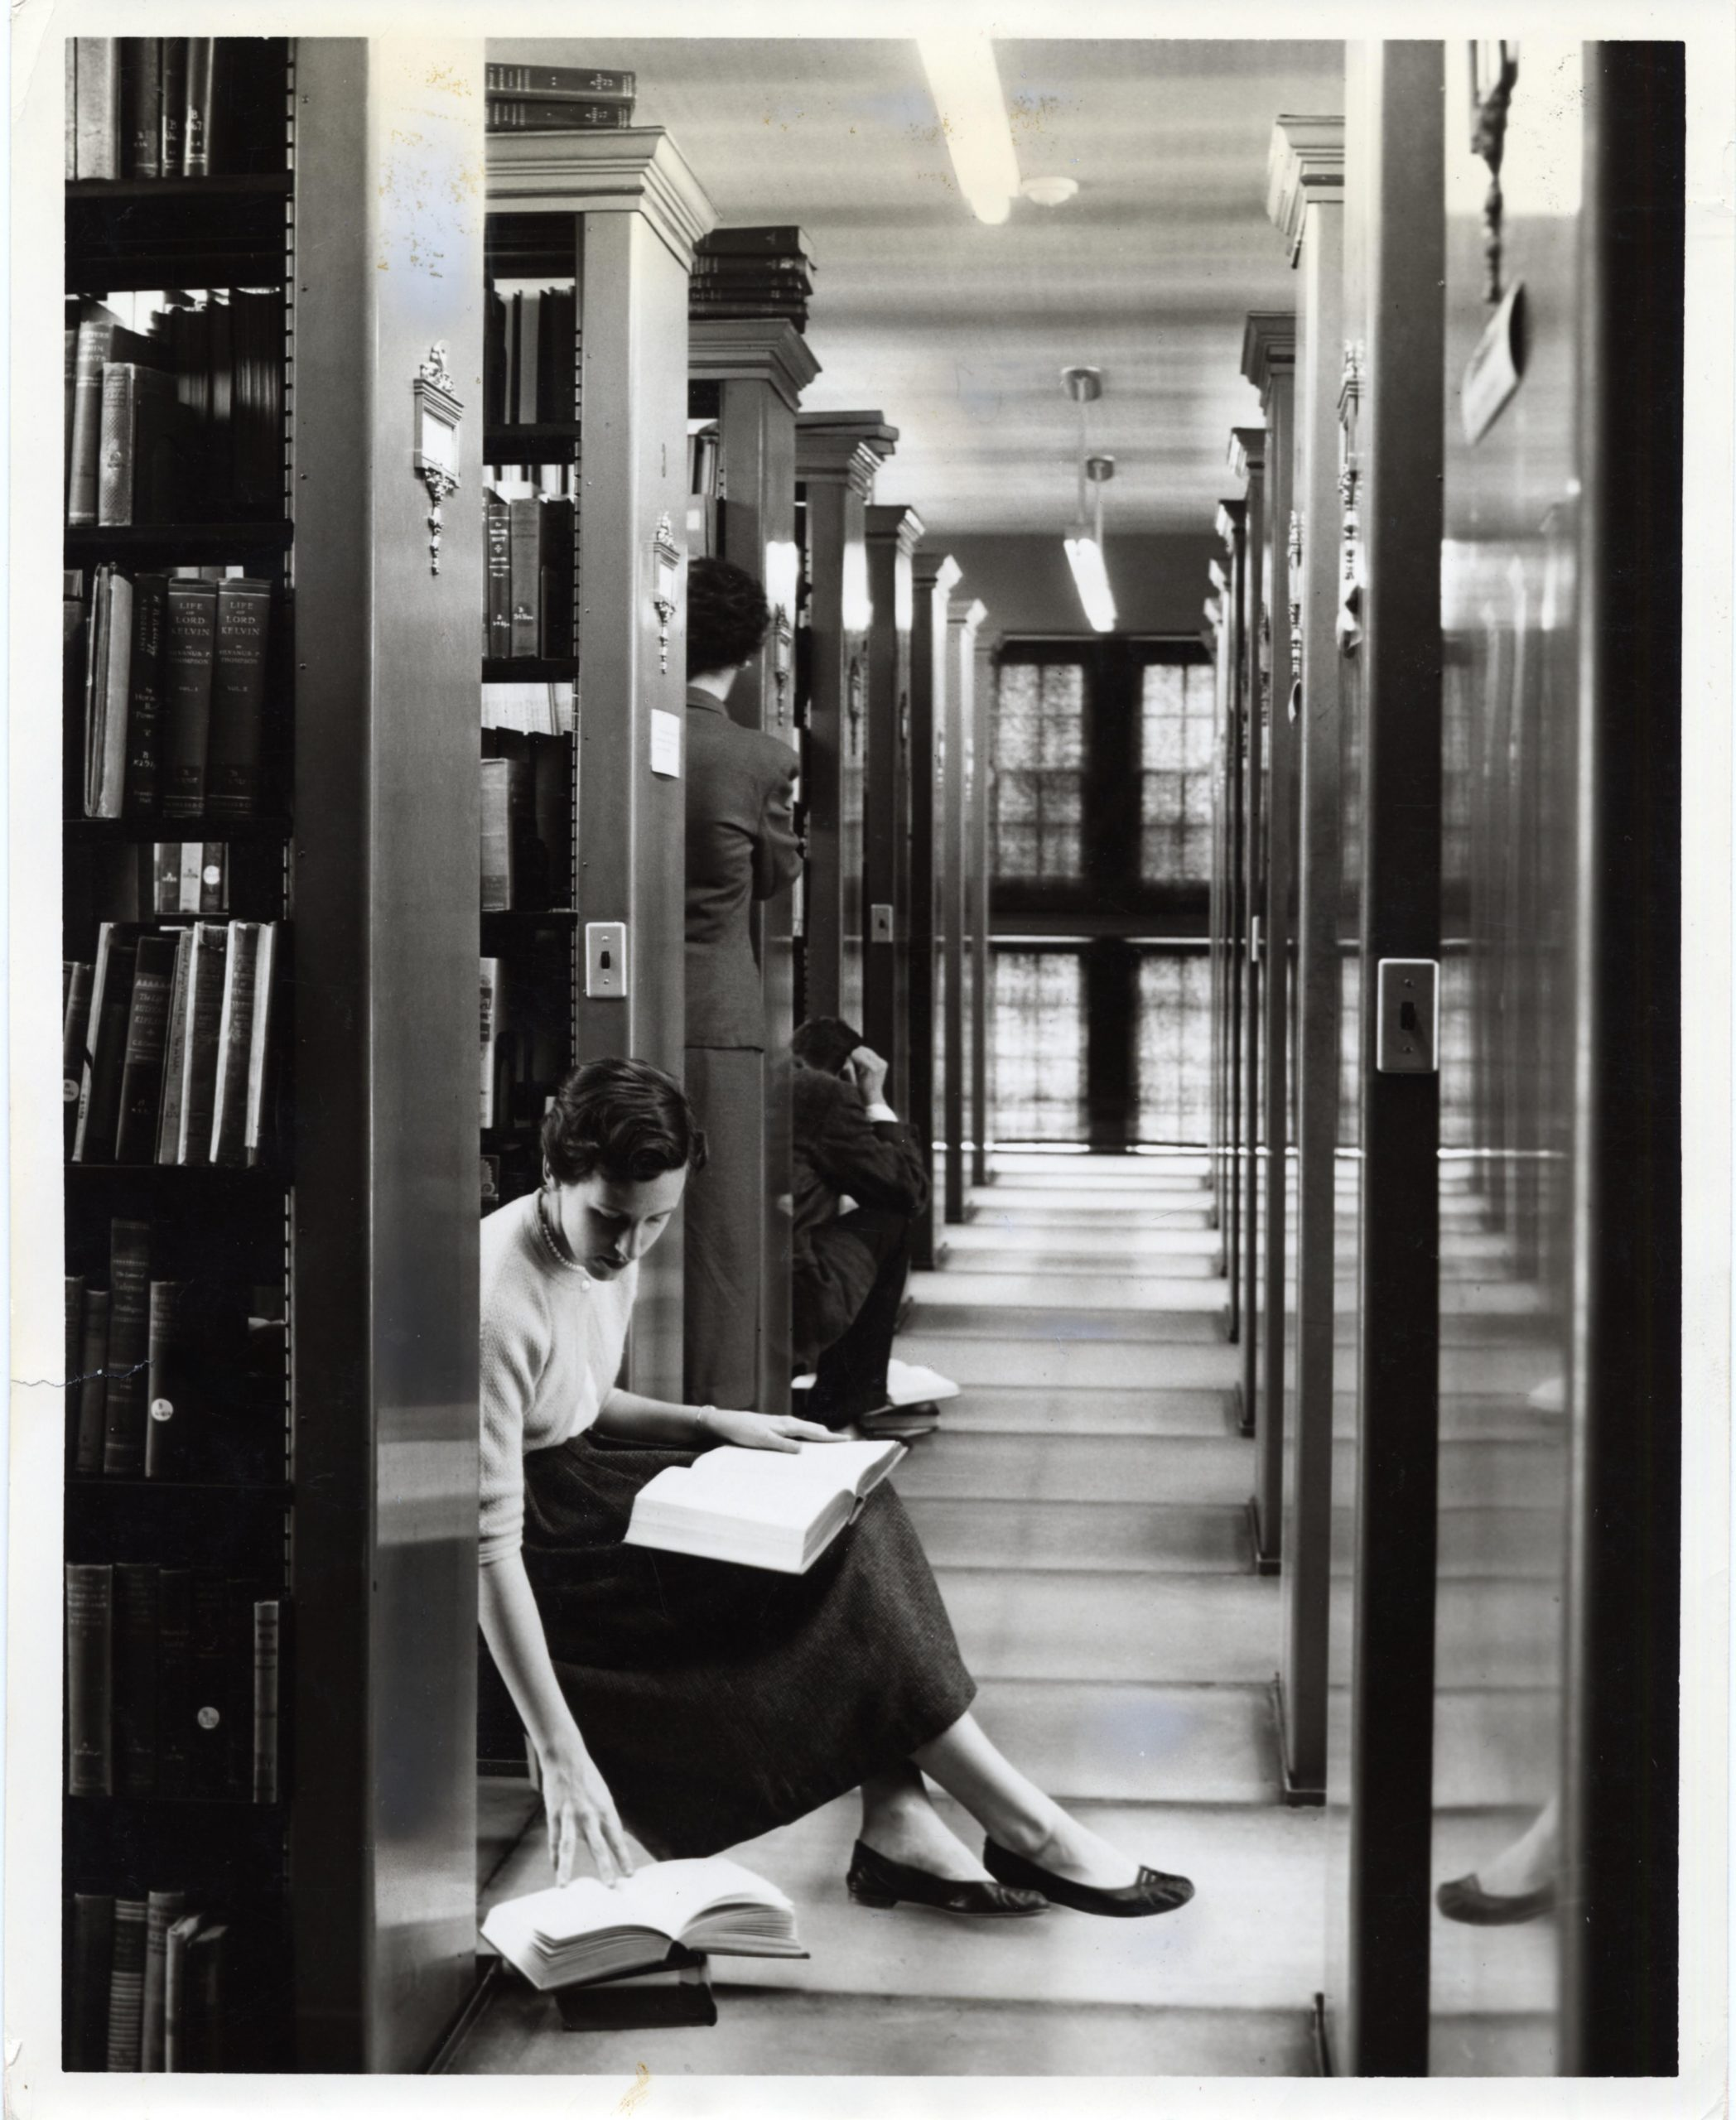 Photograph of students in between book stacks in Starr Library, in or around 1962